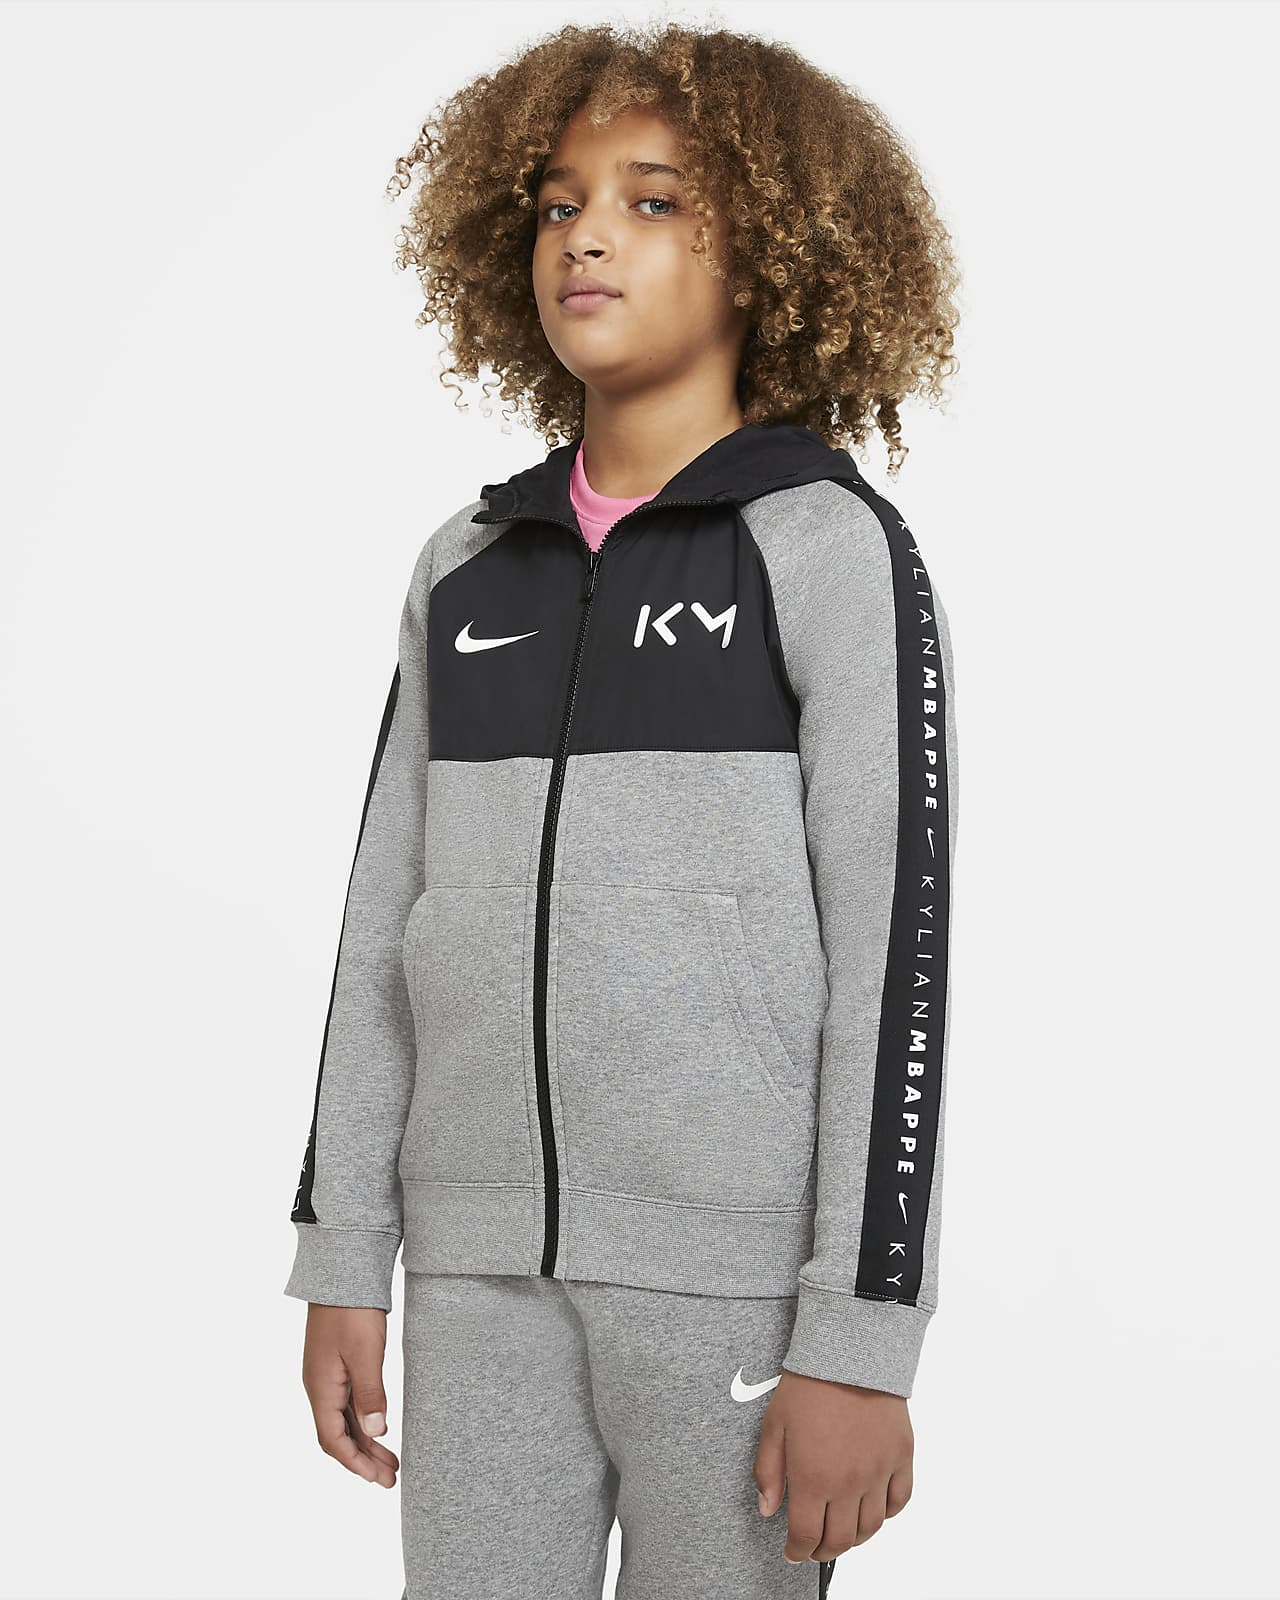 Kylian Mbappé Older Kids' Full-Zip Fleece Football Hoodie